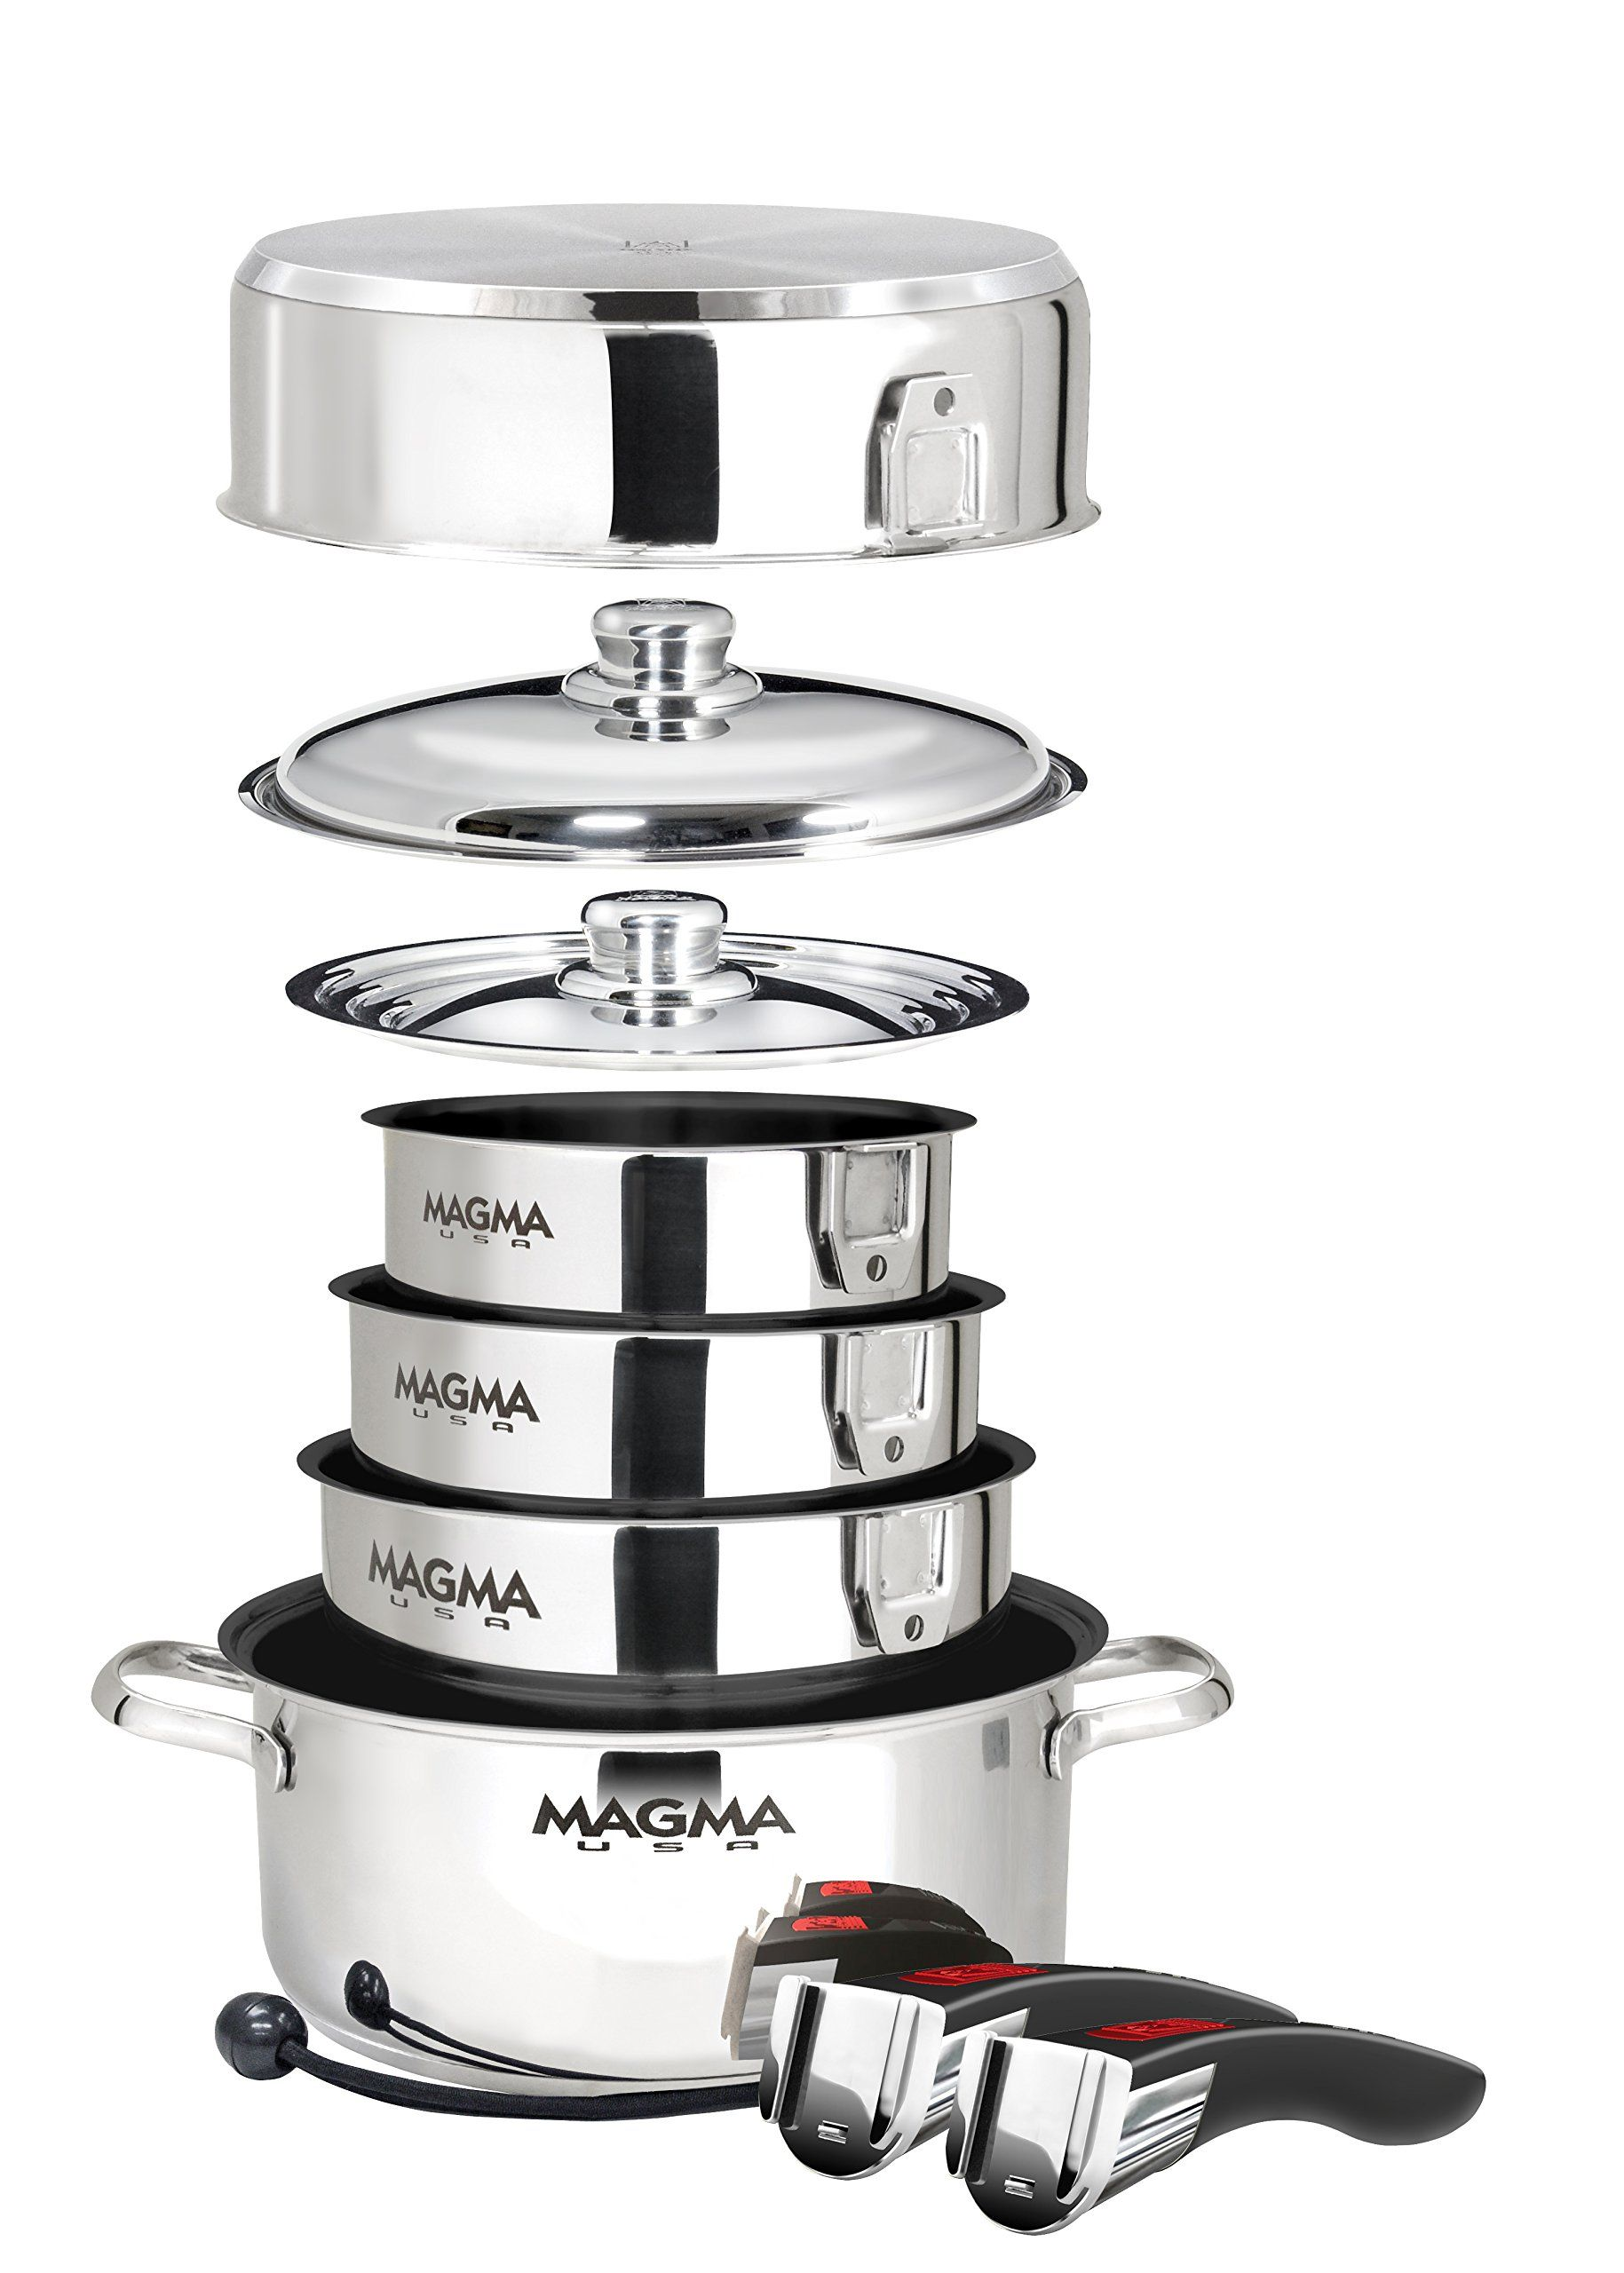 Magma Products A103662 Gourmet Nesting Stainless Steel